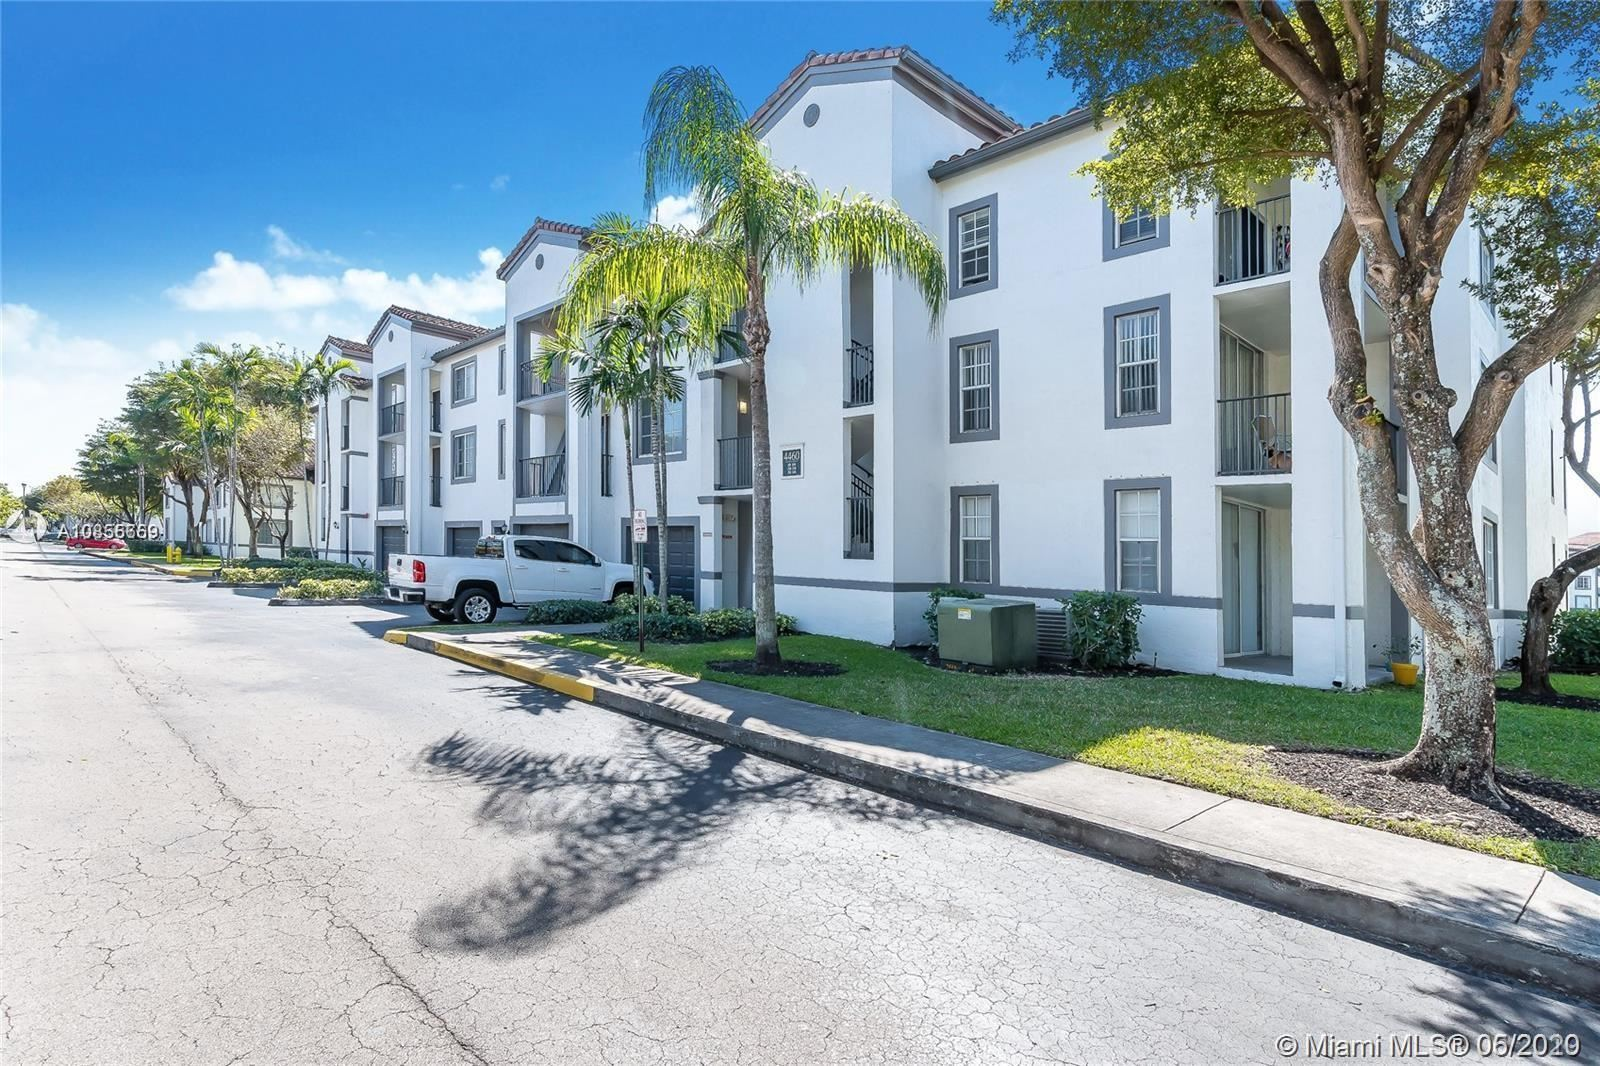 4460 NW 107th Ave #101-8, Doral, FL 33178 - #: A10855669